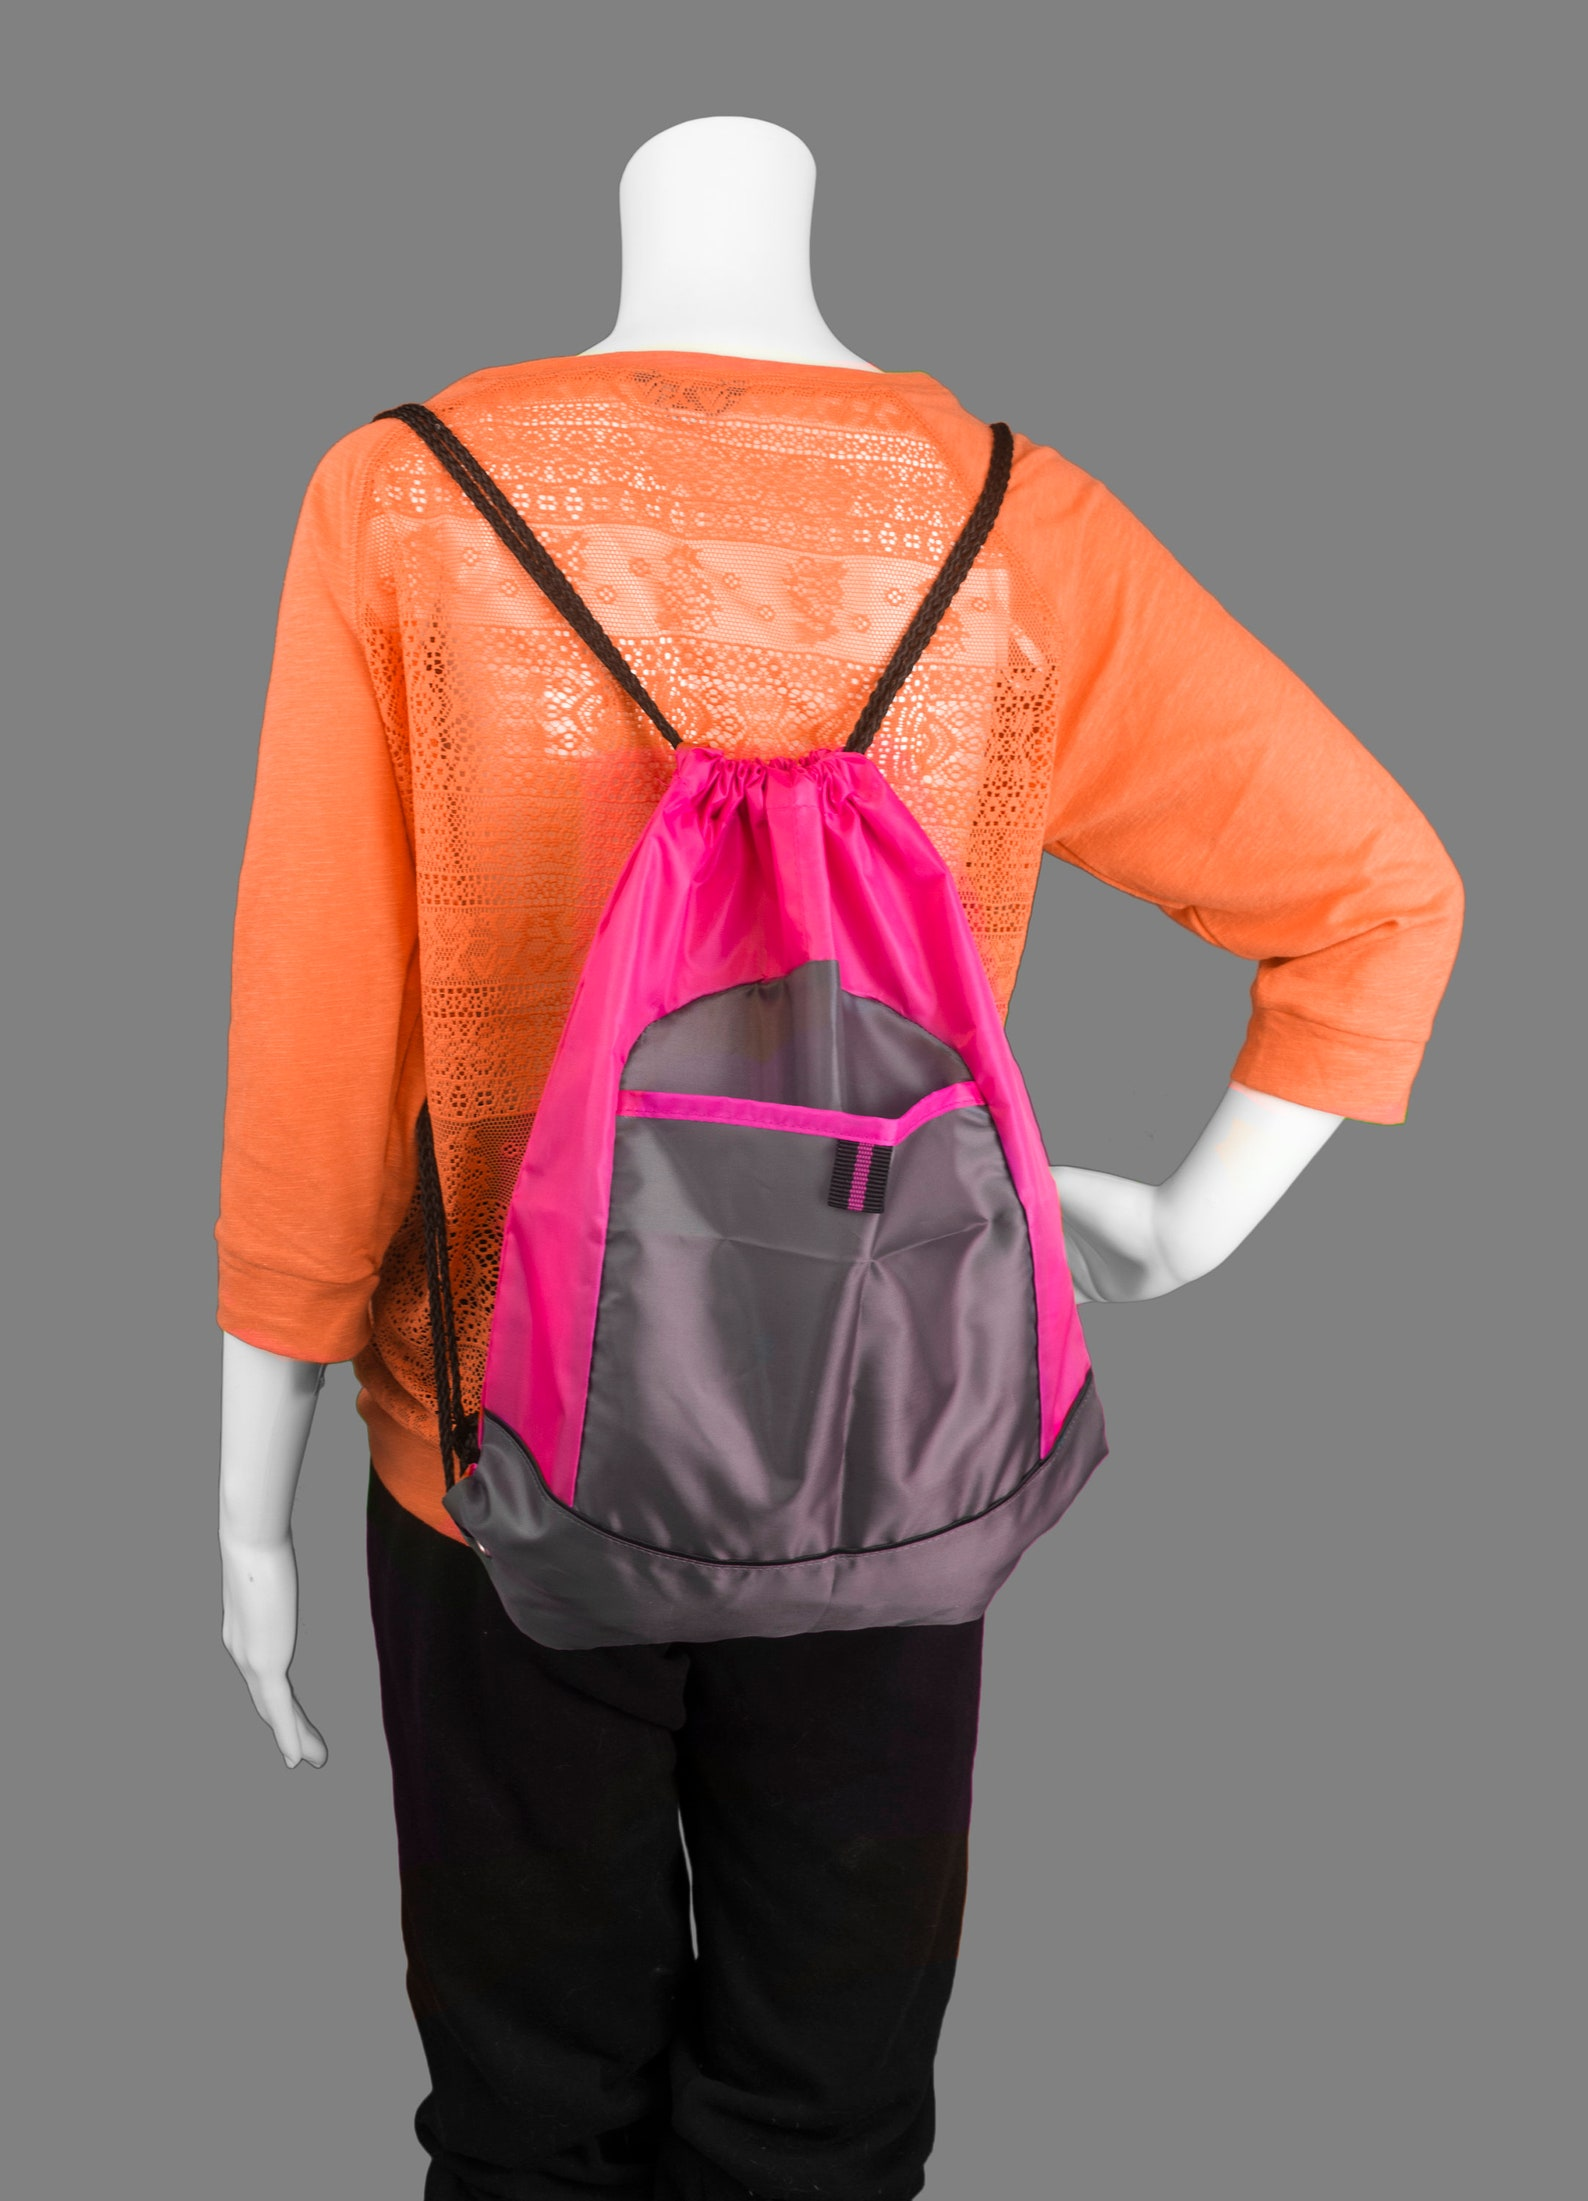 personalized ballet shoes pocket drawstring sackpack bag with free personalization & free shipping bg611